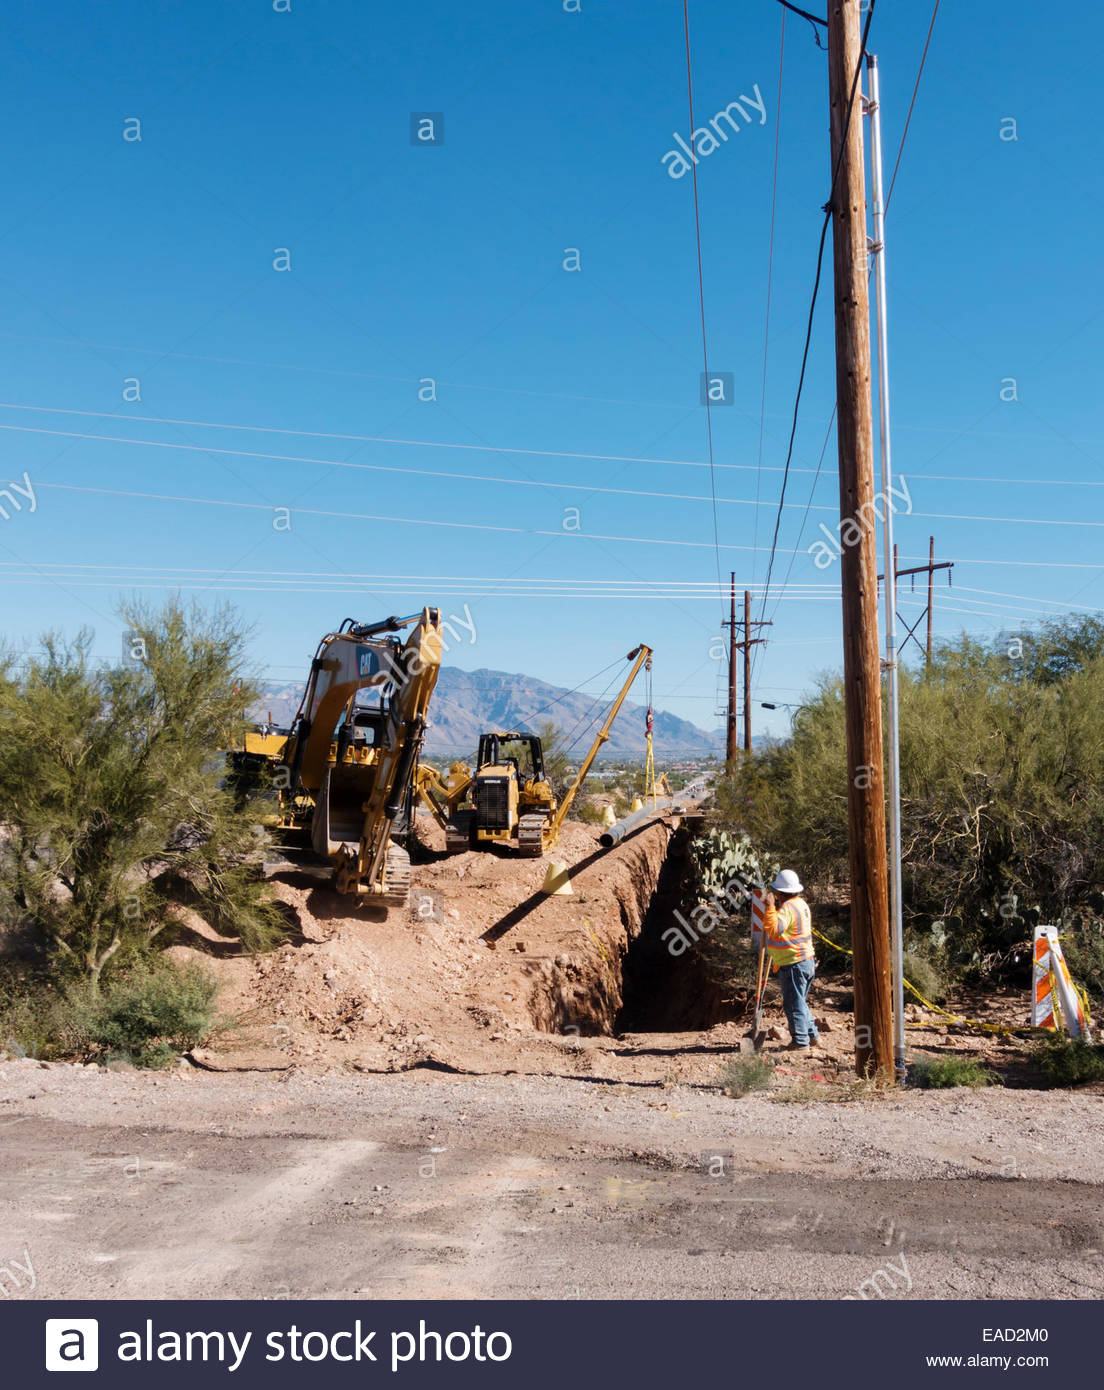 Caterpillar CAT D5K2 pipelayer holding natural gas pipeline 316E excavator foreground Arizona 2 people visible - Stock Image